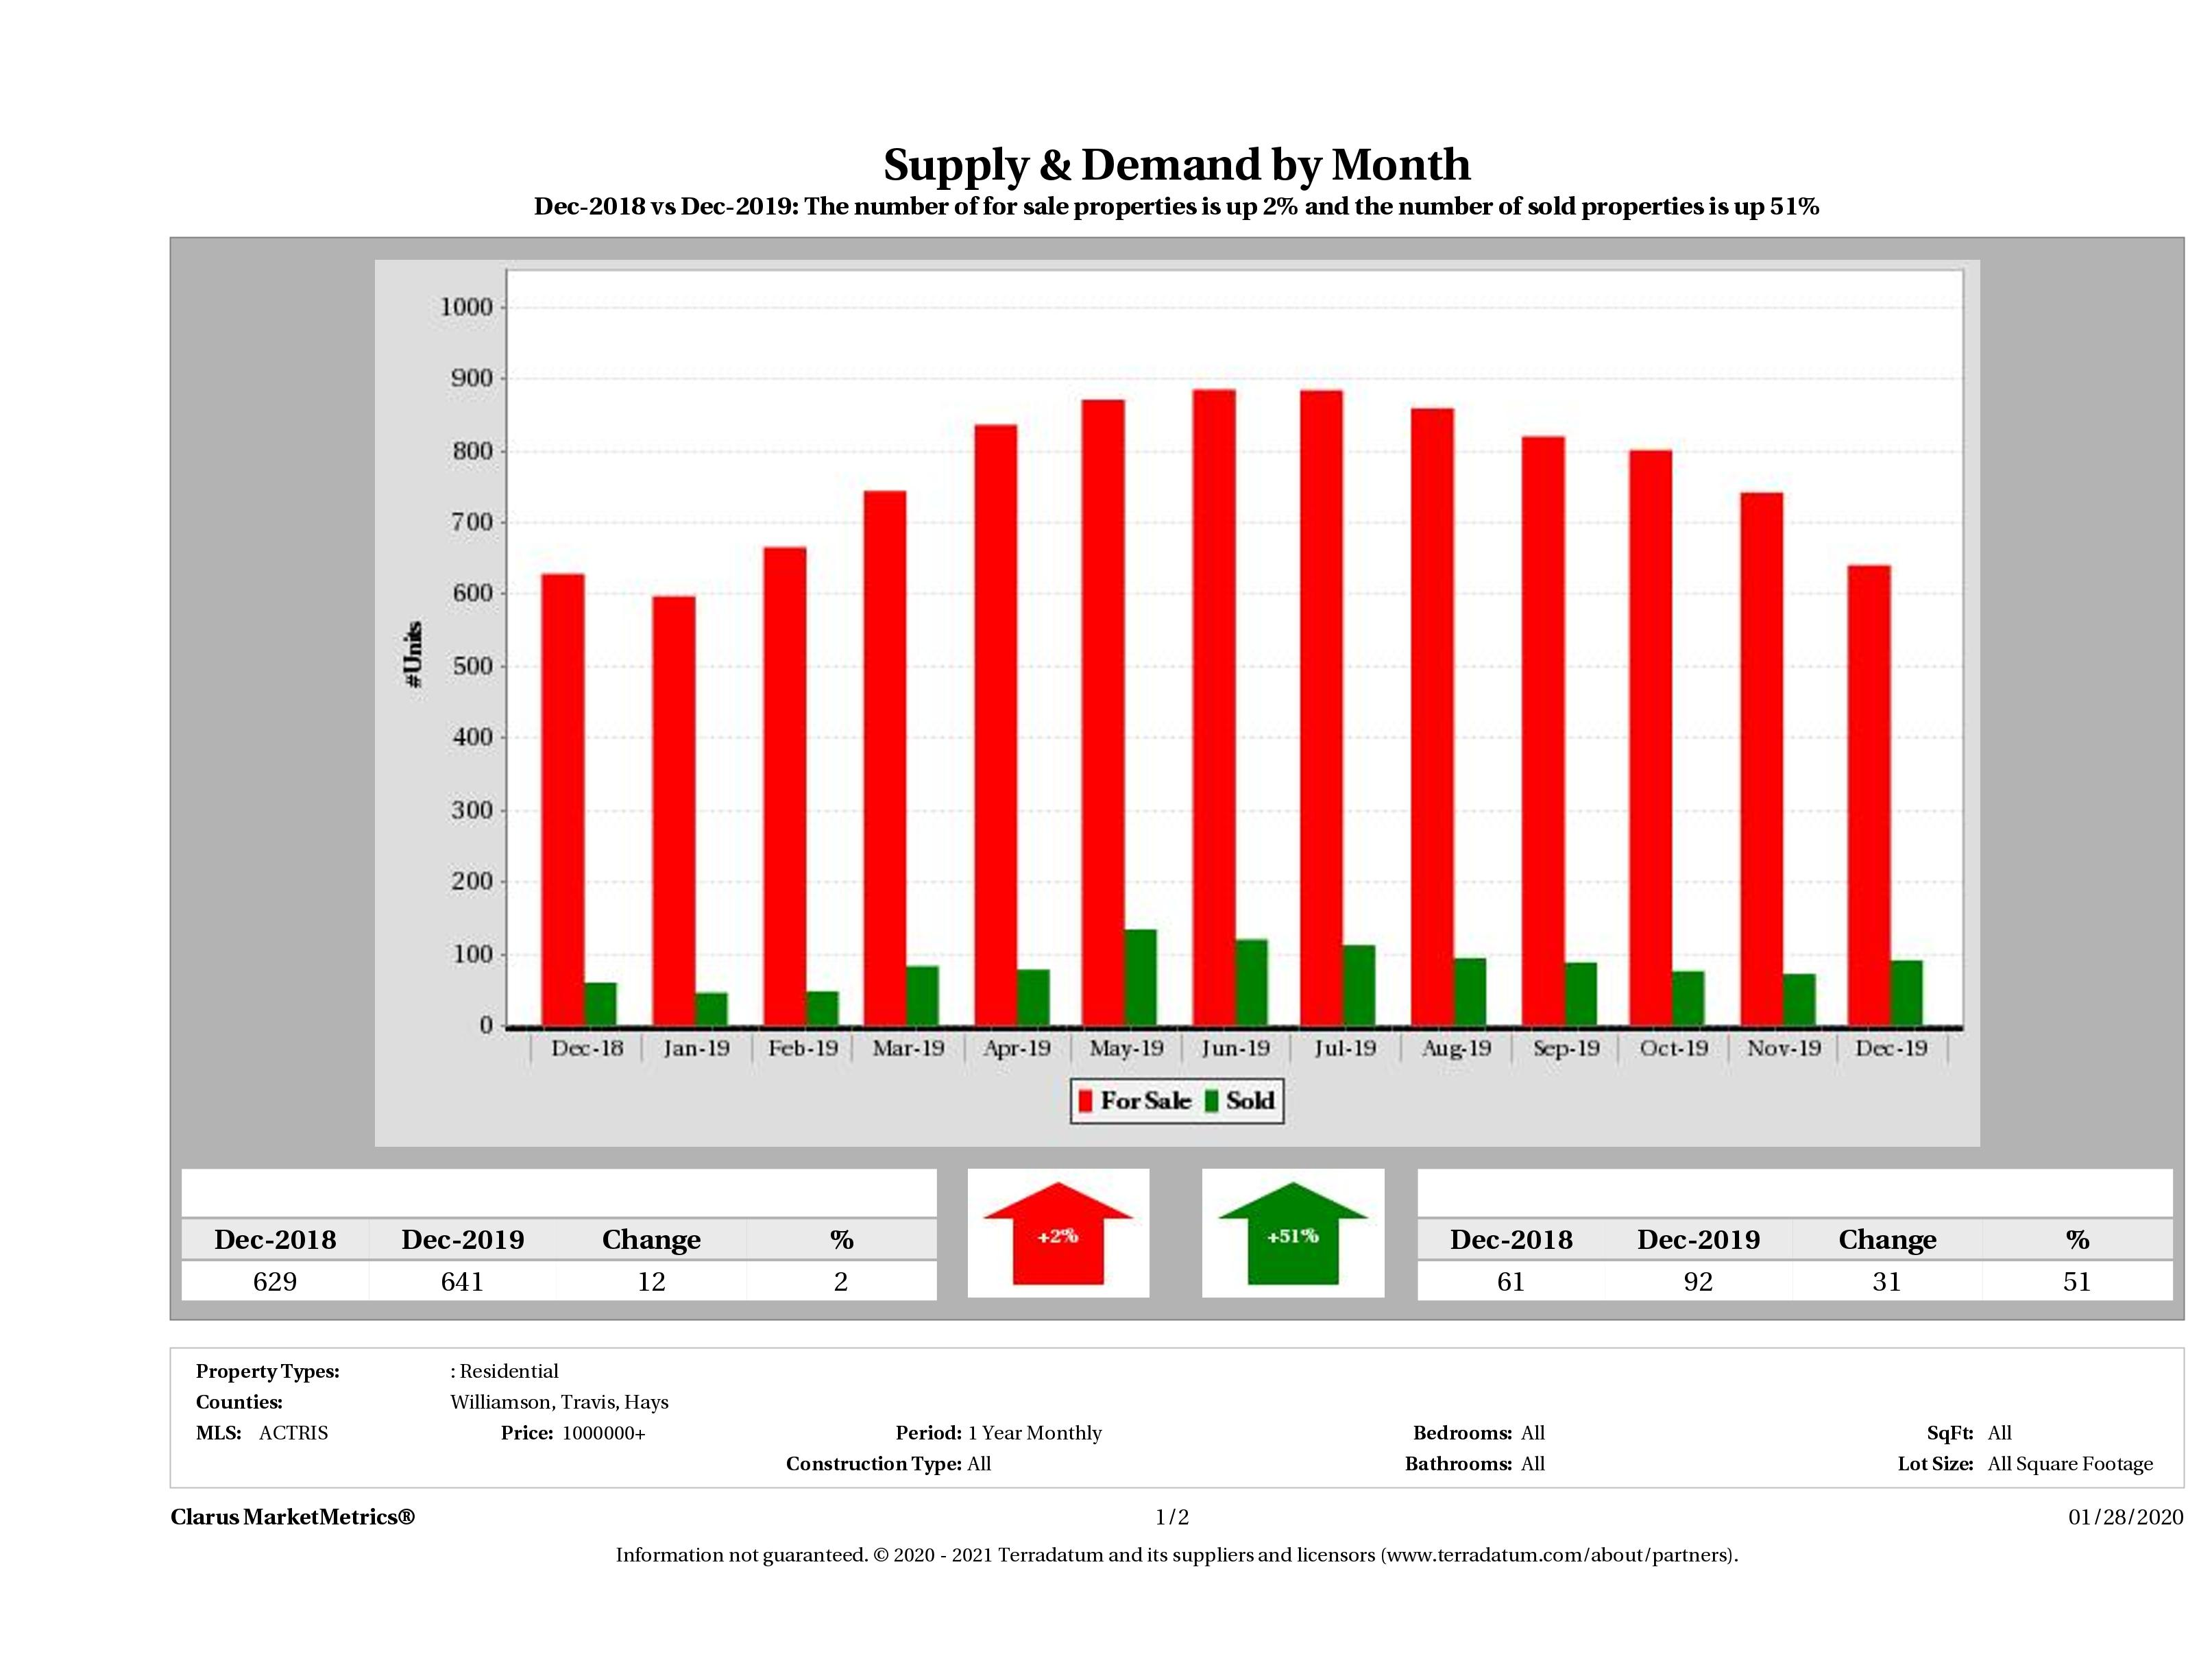 Austin luxury real estate market supply and demand December 2019